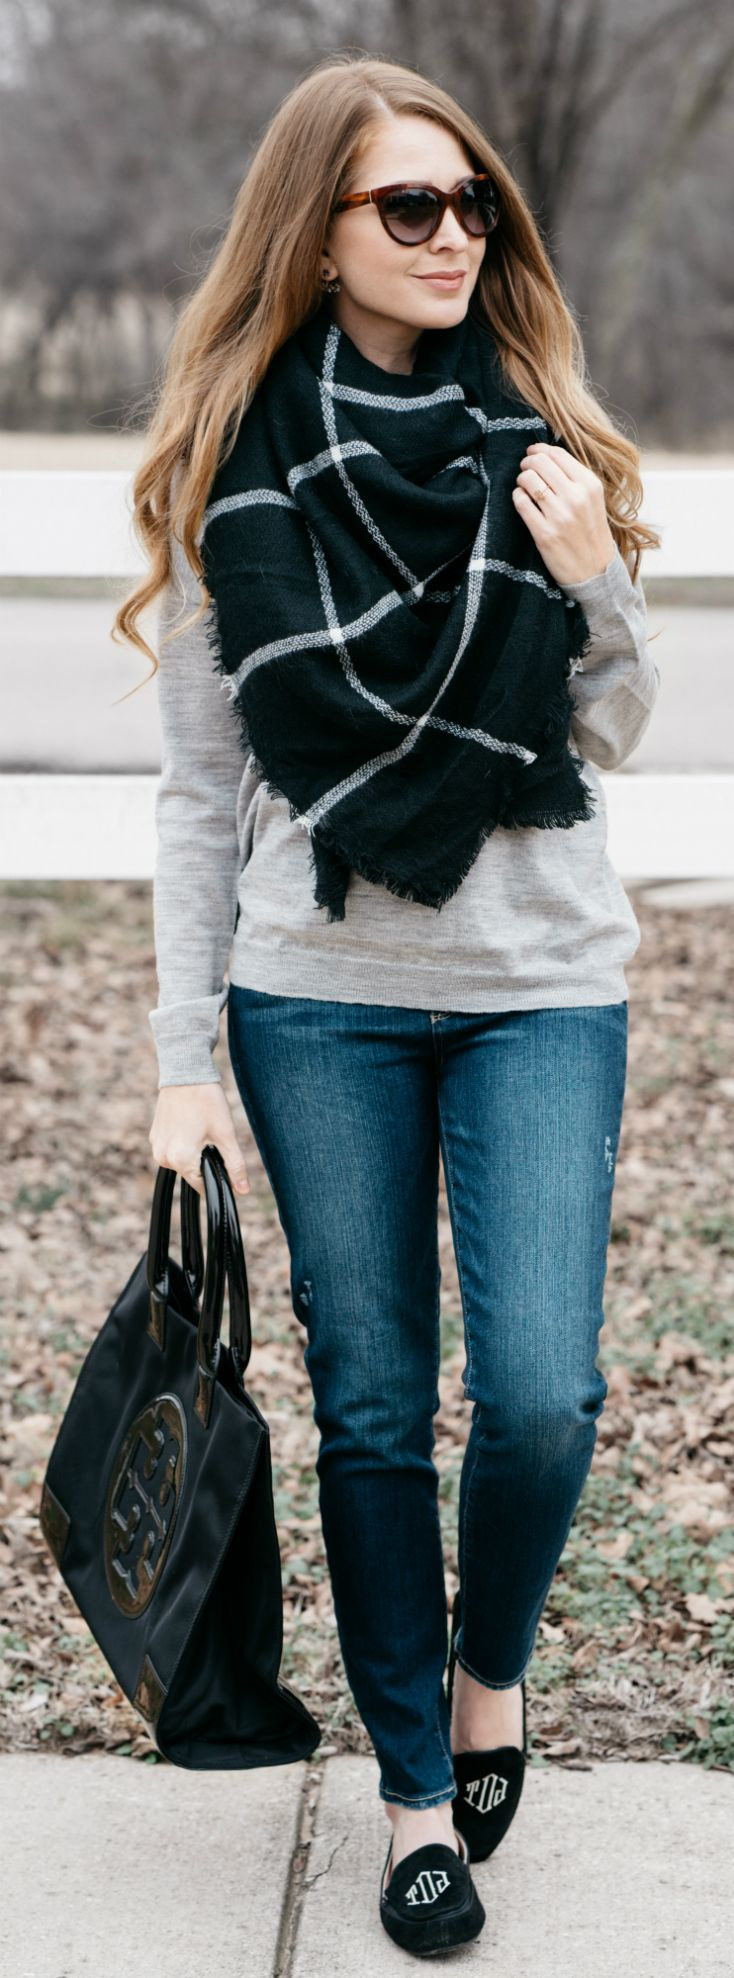 Black Blanket Scarf / Tory Burch Ella Tote / Marley Lilly Monogrammed Loafers / Fall & Winter Style / Fashion / Outfit Ideas